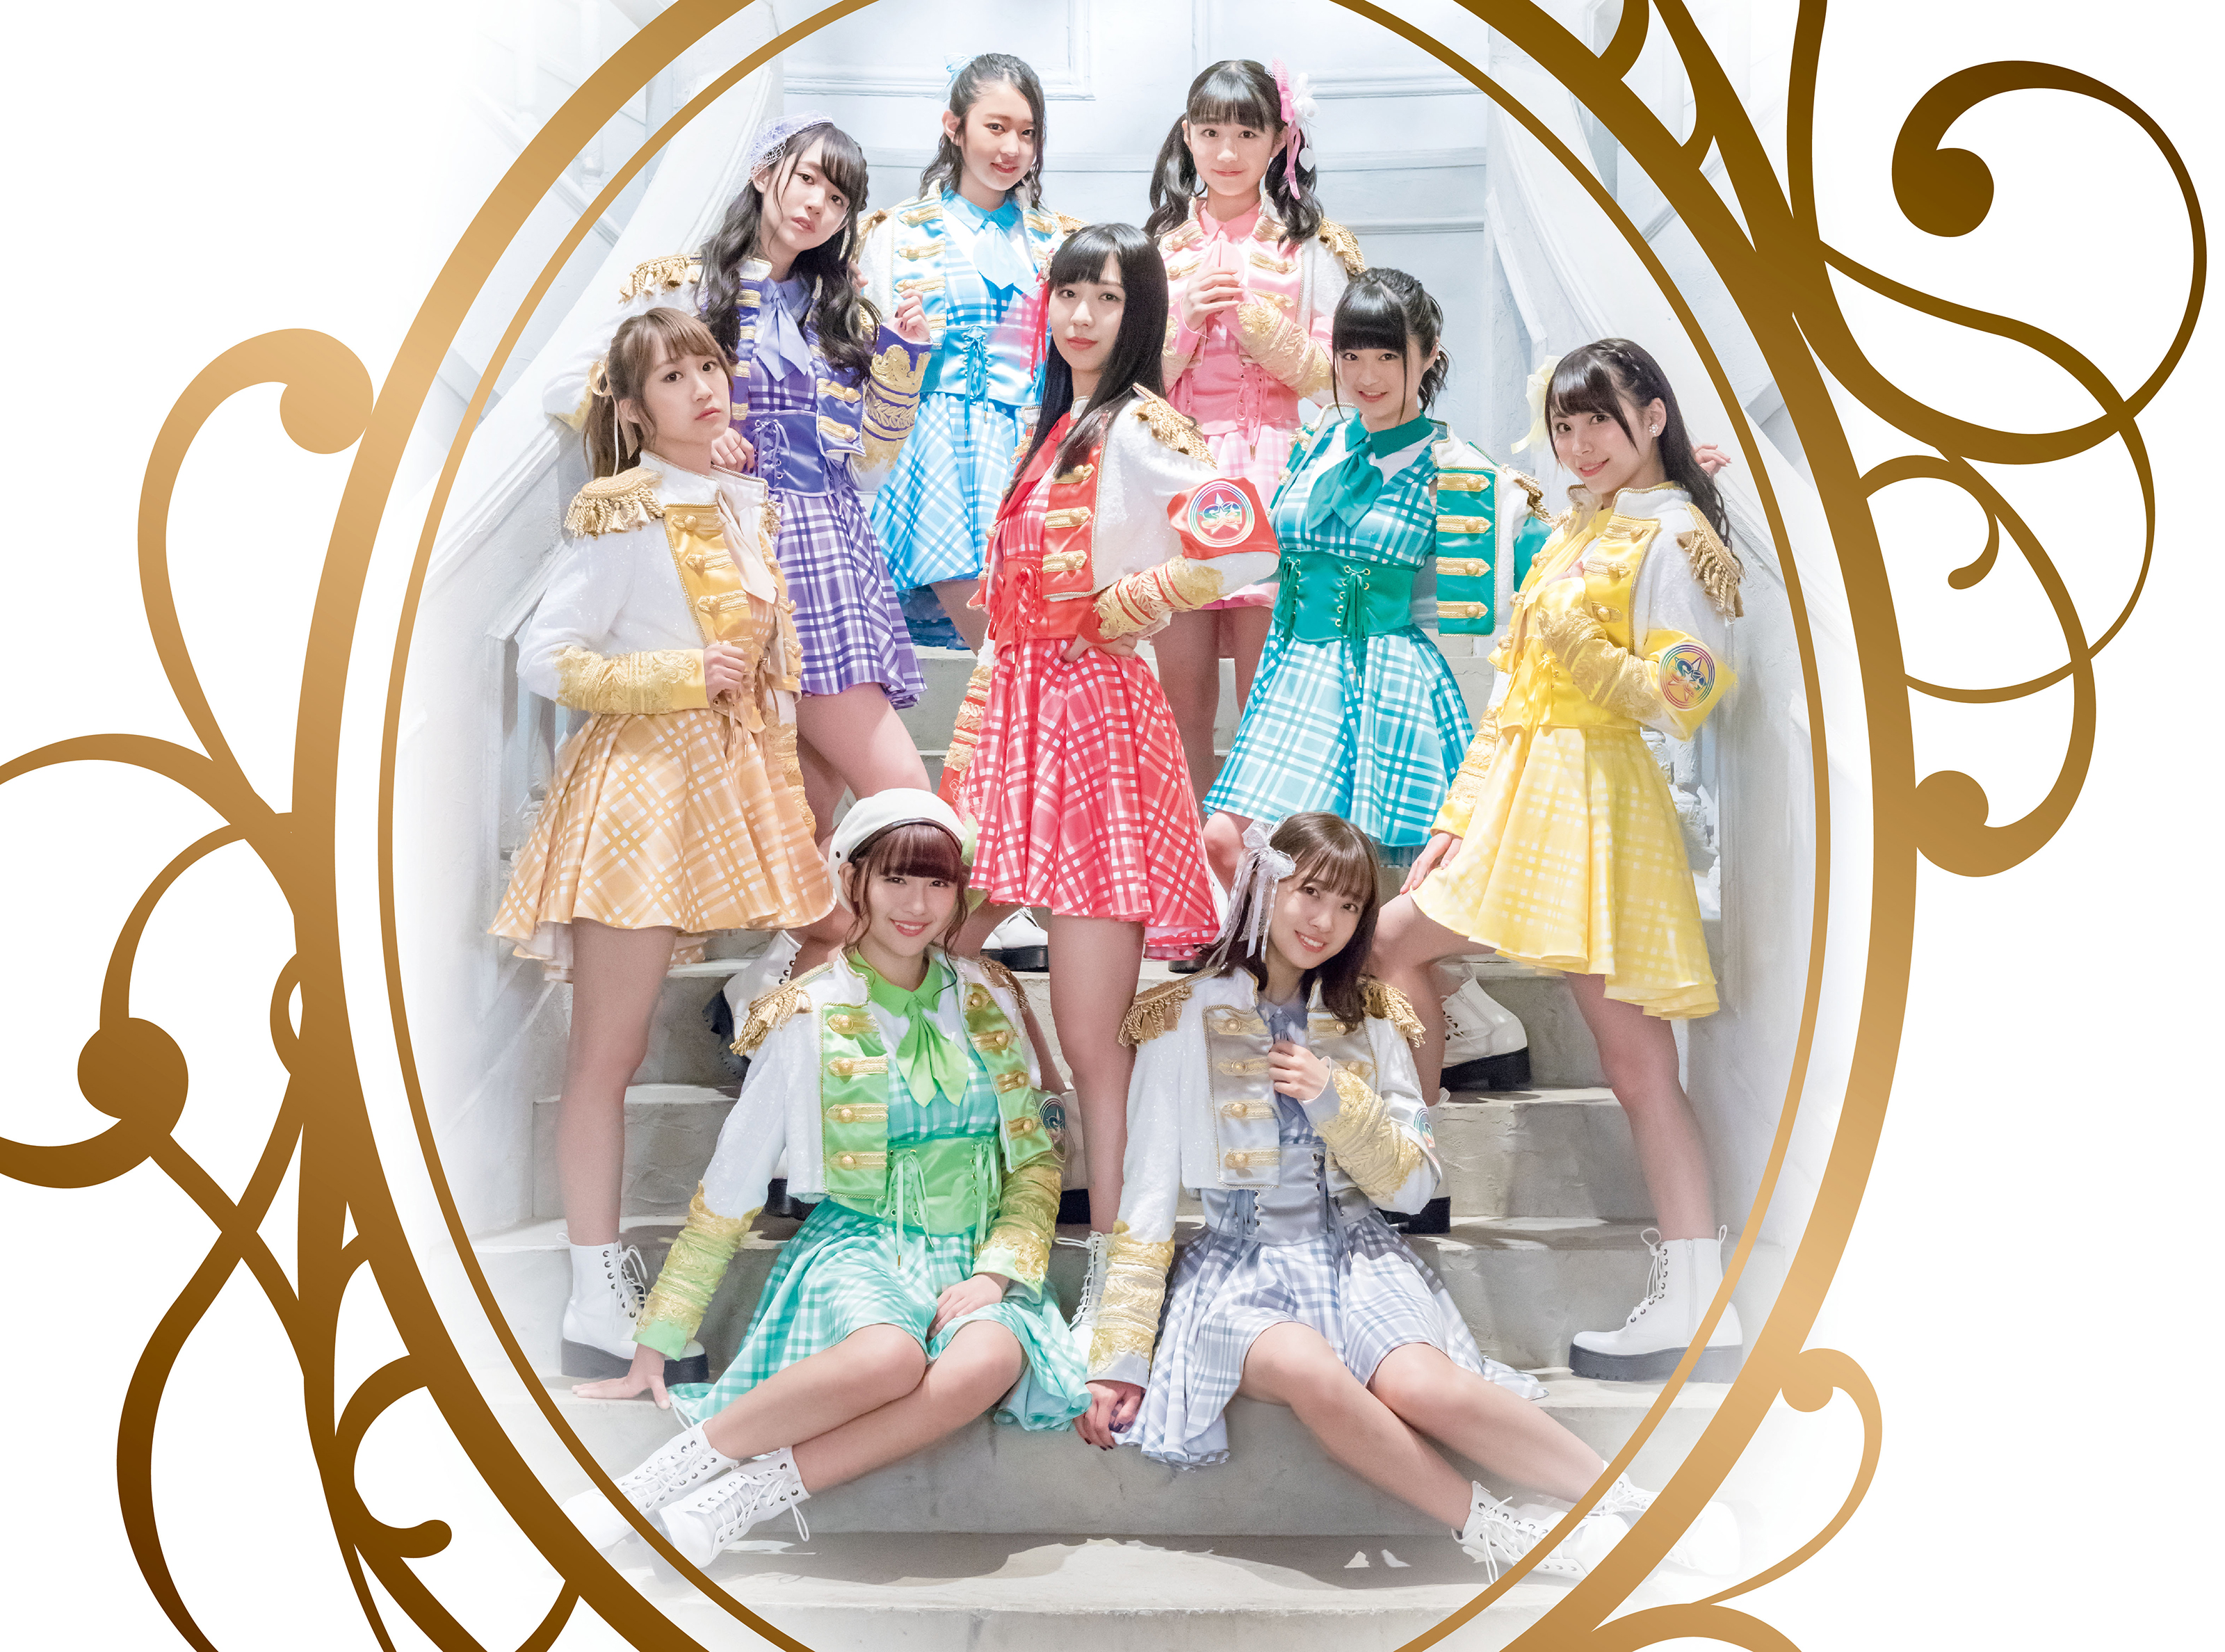 SUPER☆GiRLS(スパガ) Official Website